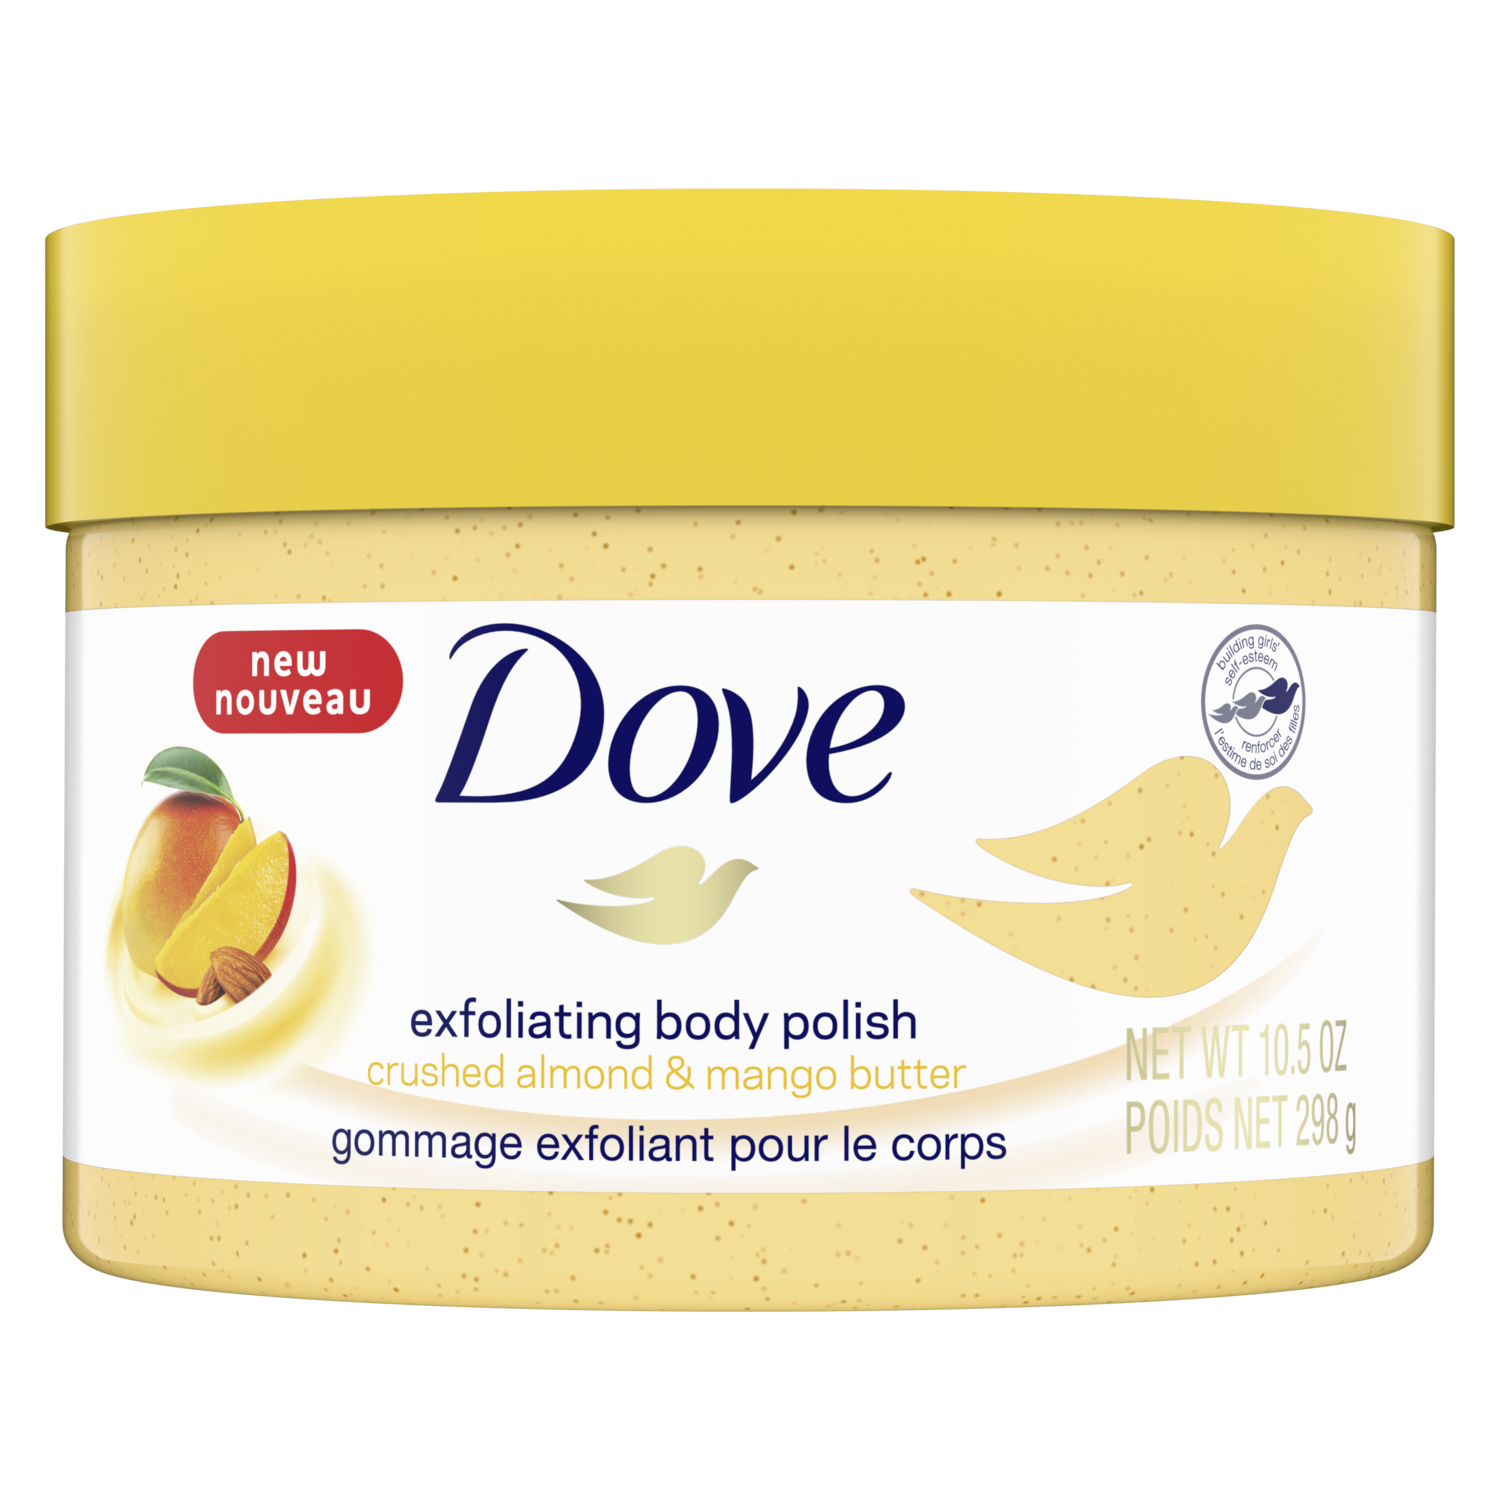 Dove Mango Almond Butter Exfoliating Body Polish